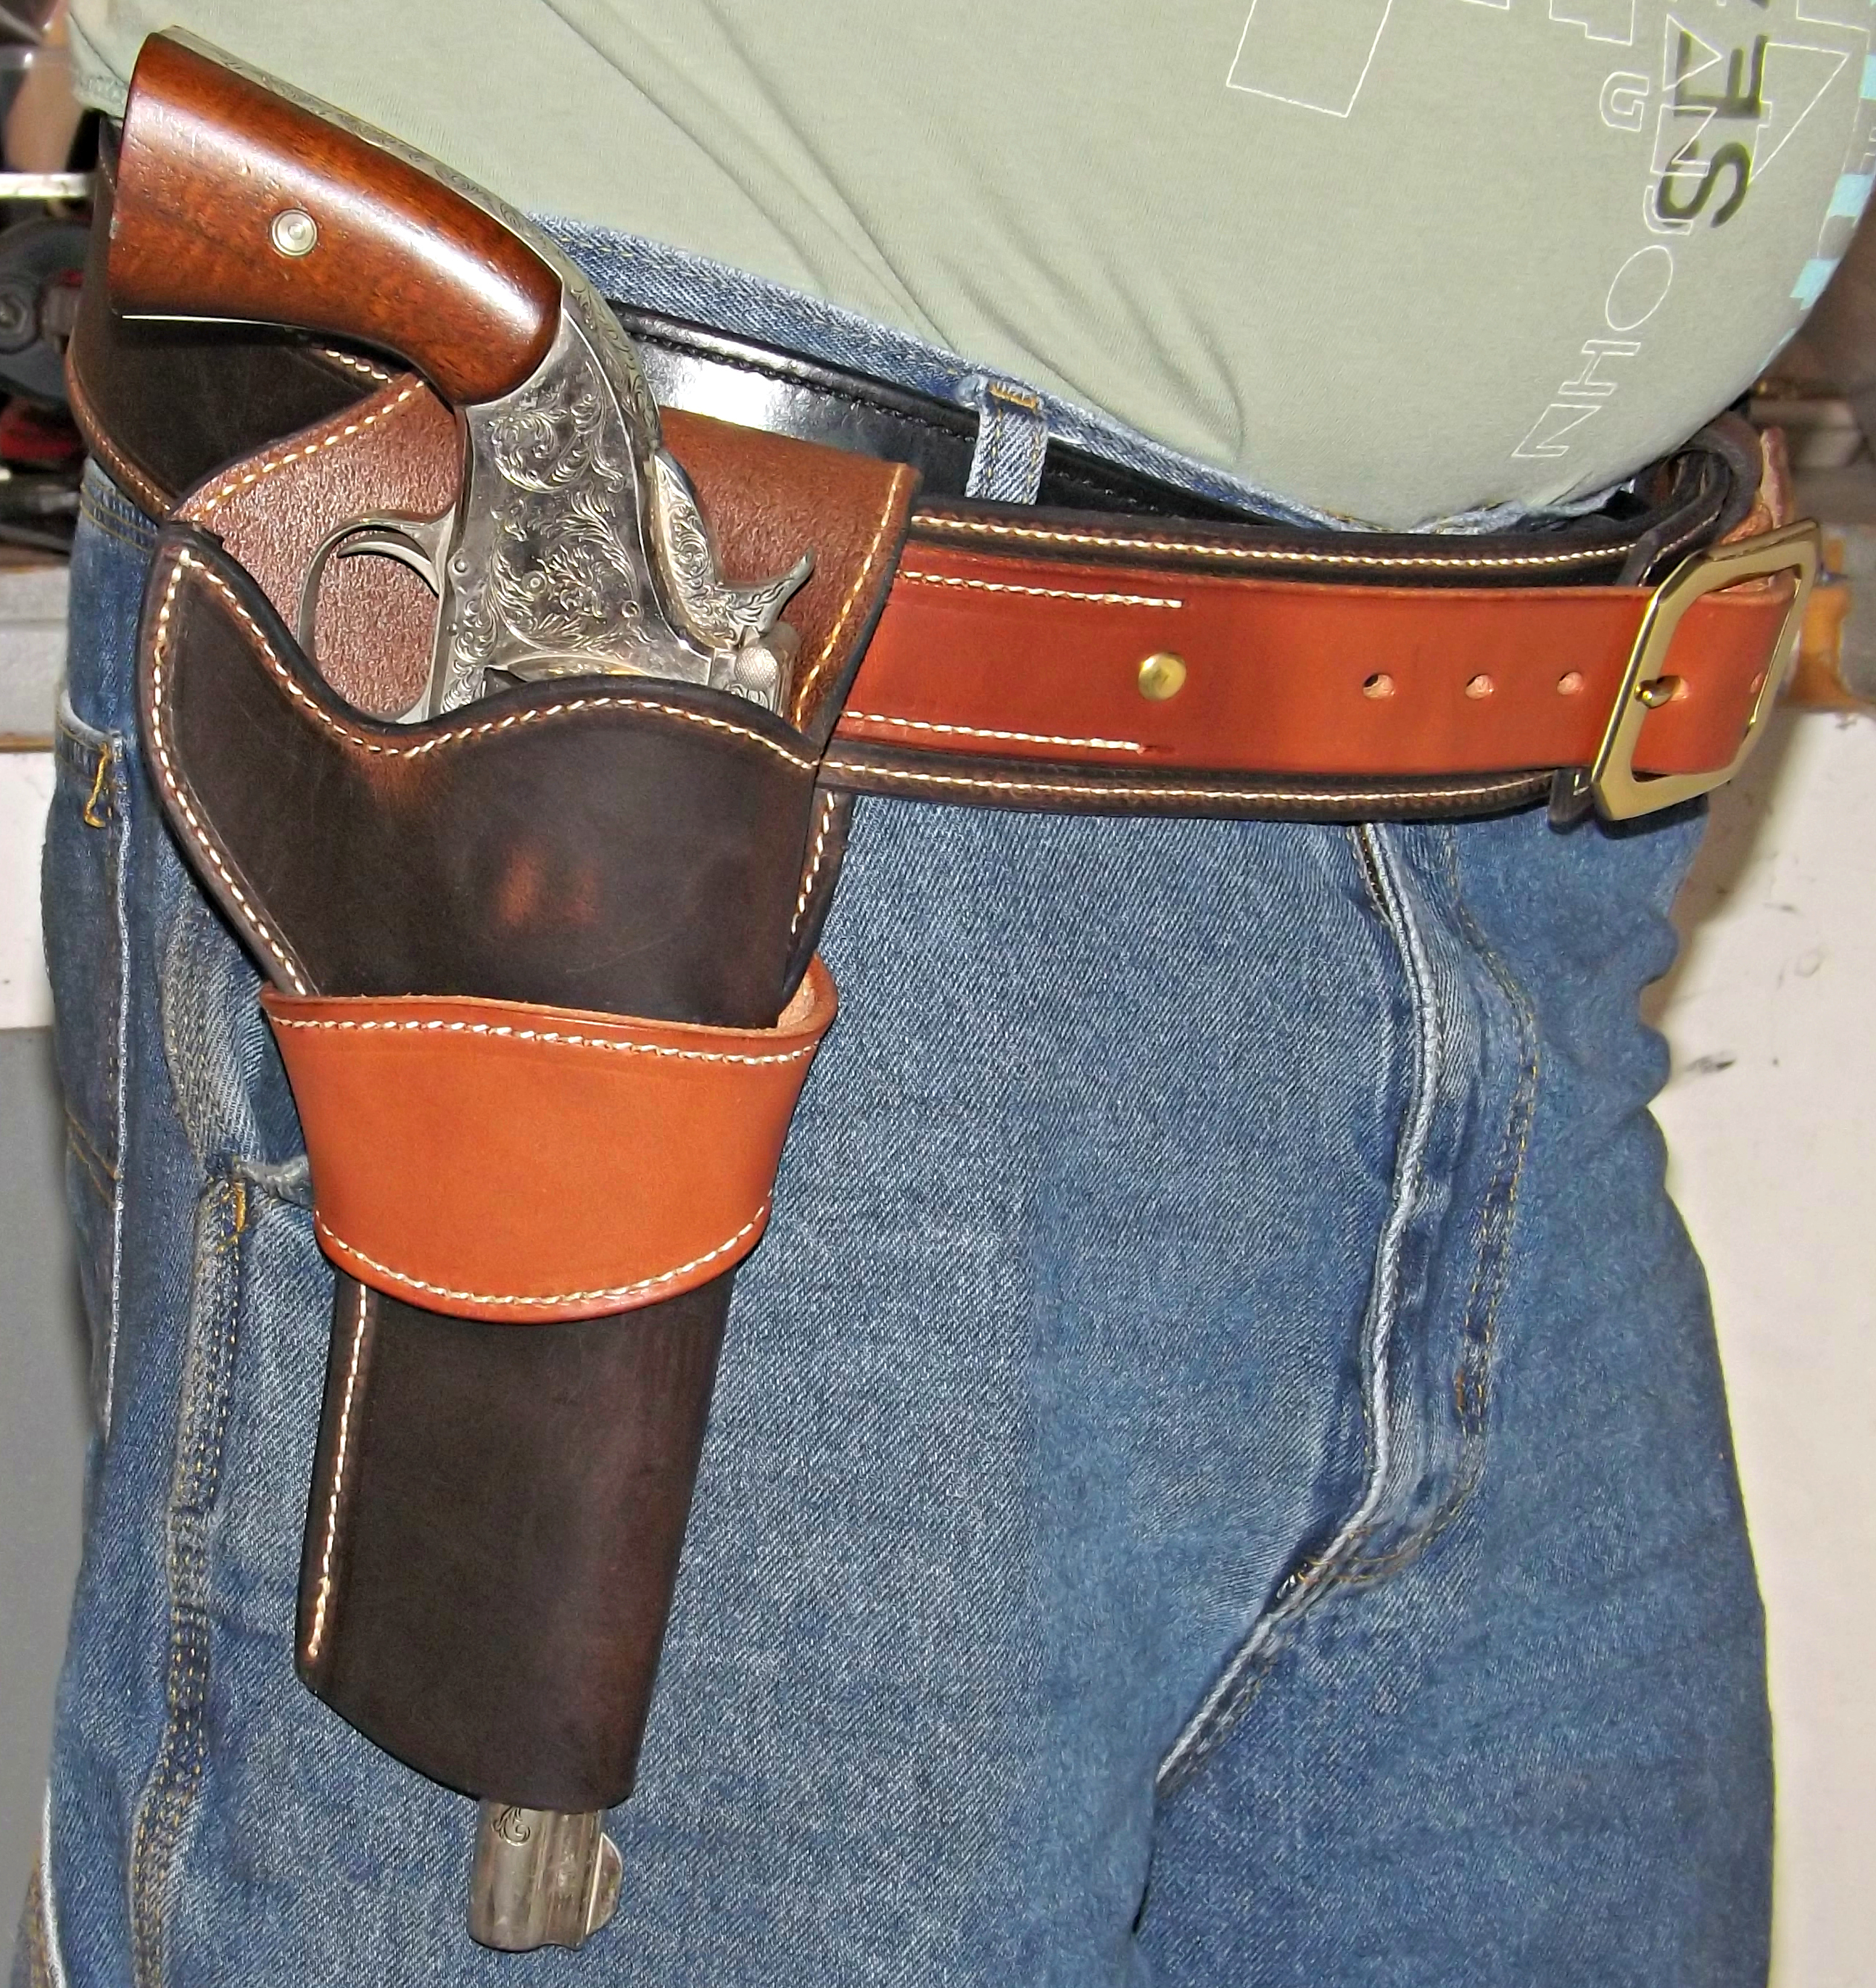 Western Holster Matches the New Western Premium Full Grain Leather Belt with Cartridge Loops Dark Brown and Chestnut Combo